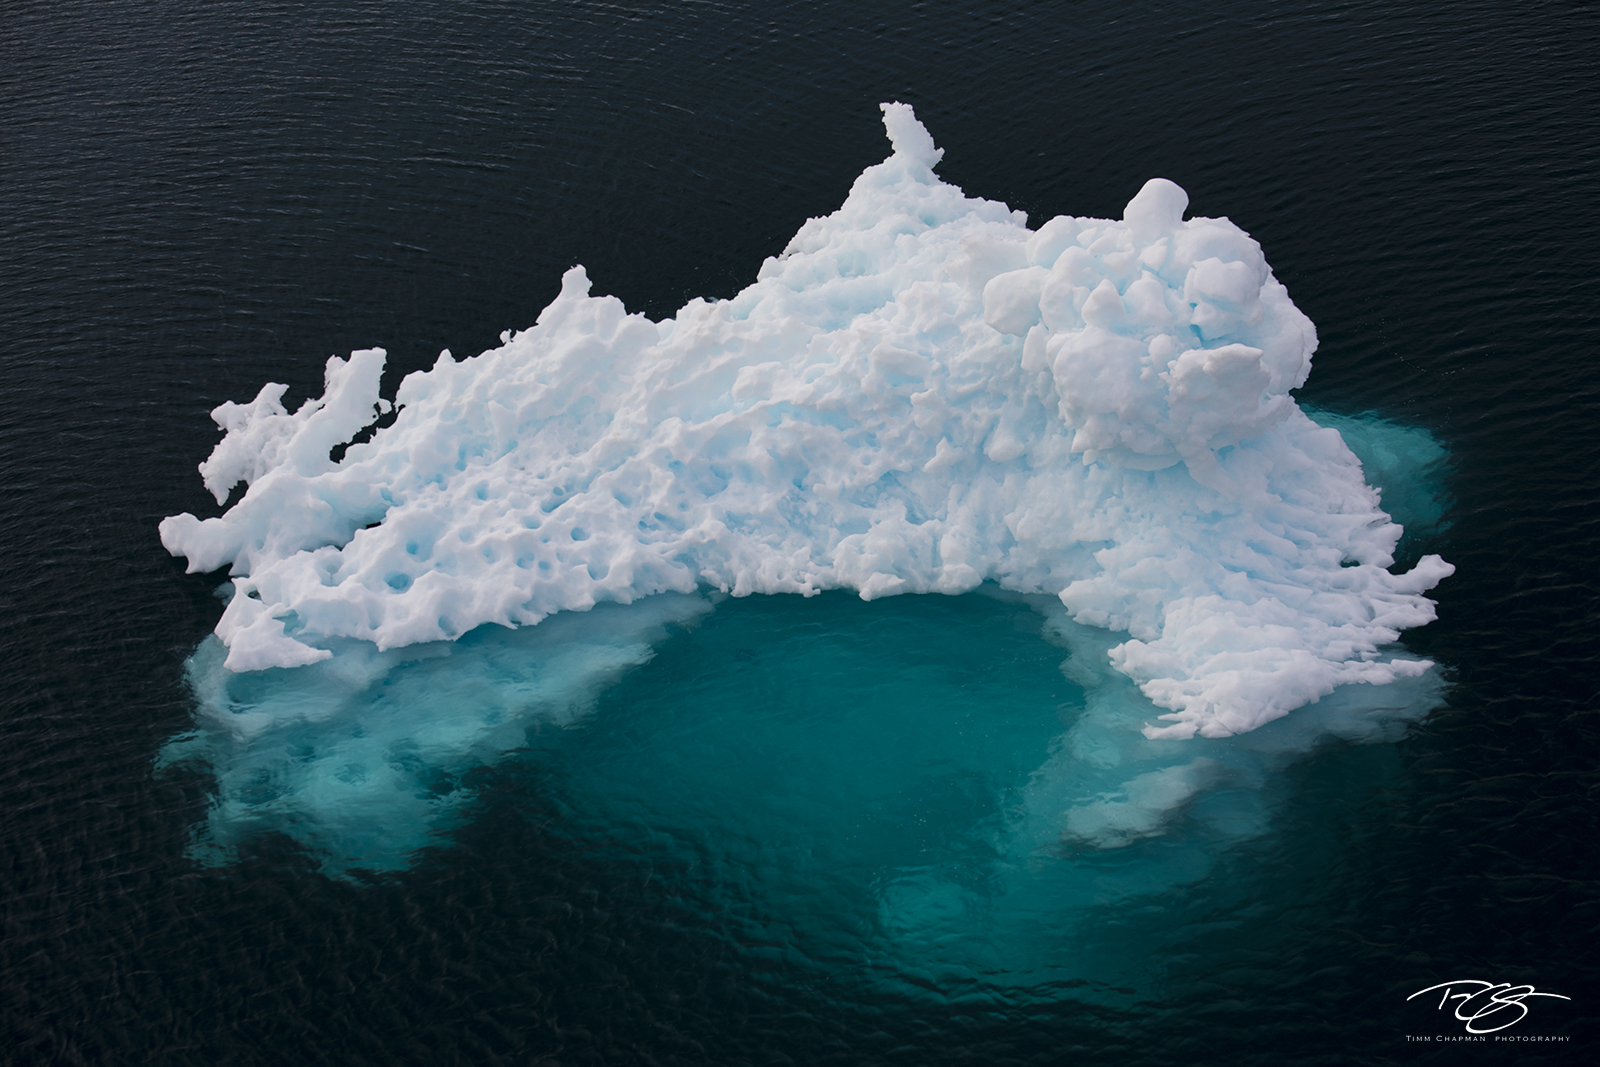 Wind and weather carefully sculpt an iceberg in the Scoresbysund of East Greenland